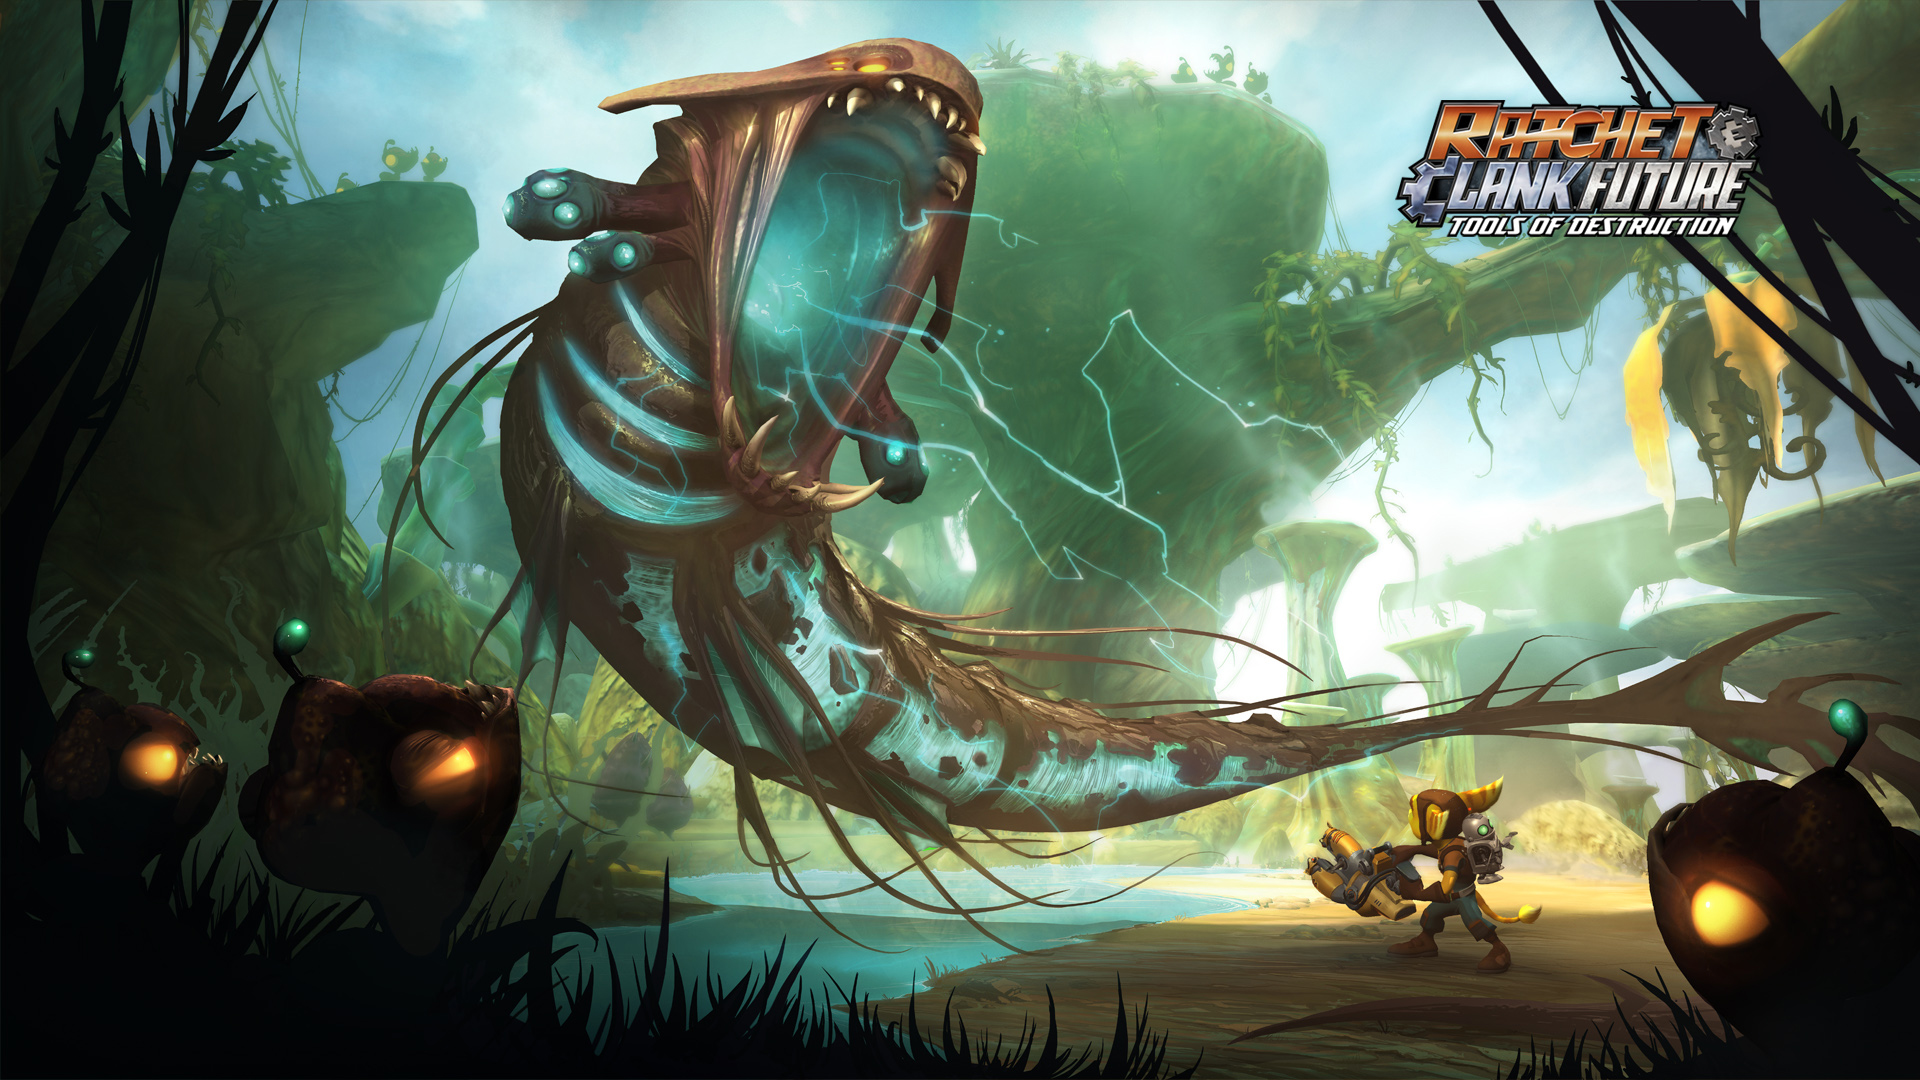 Wallpapers Ratchet Clank Future Tools Of Destruction Ps3